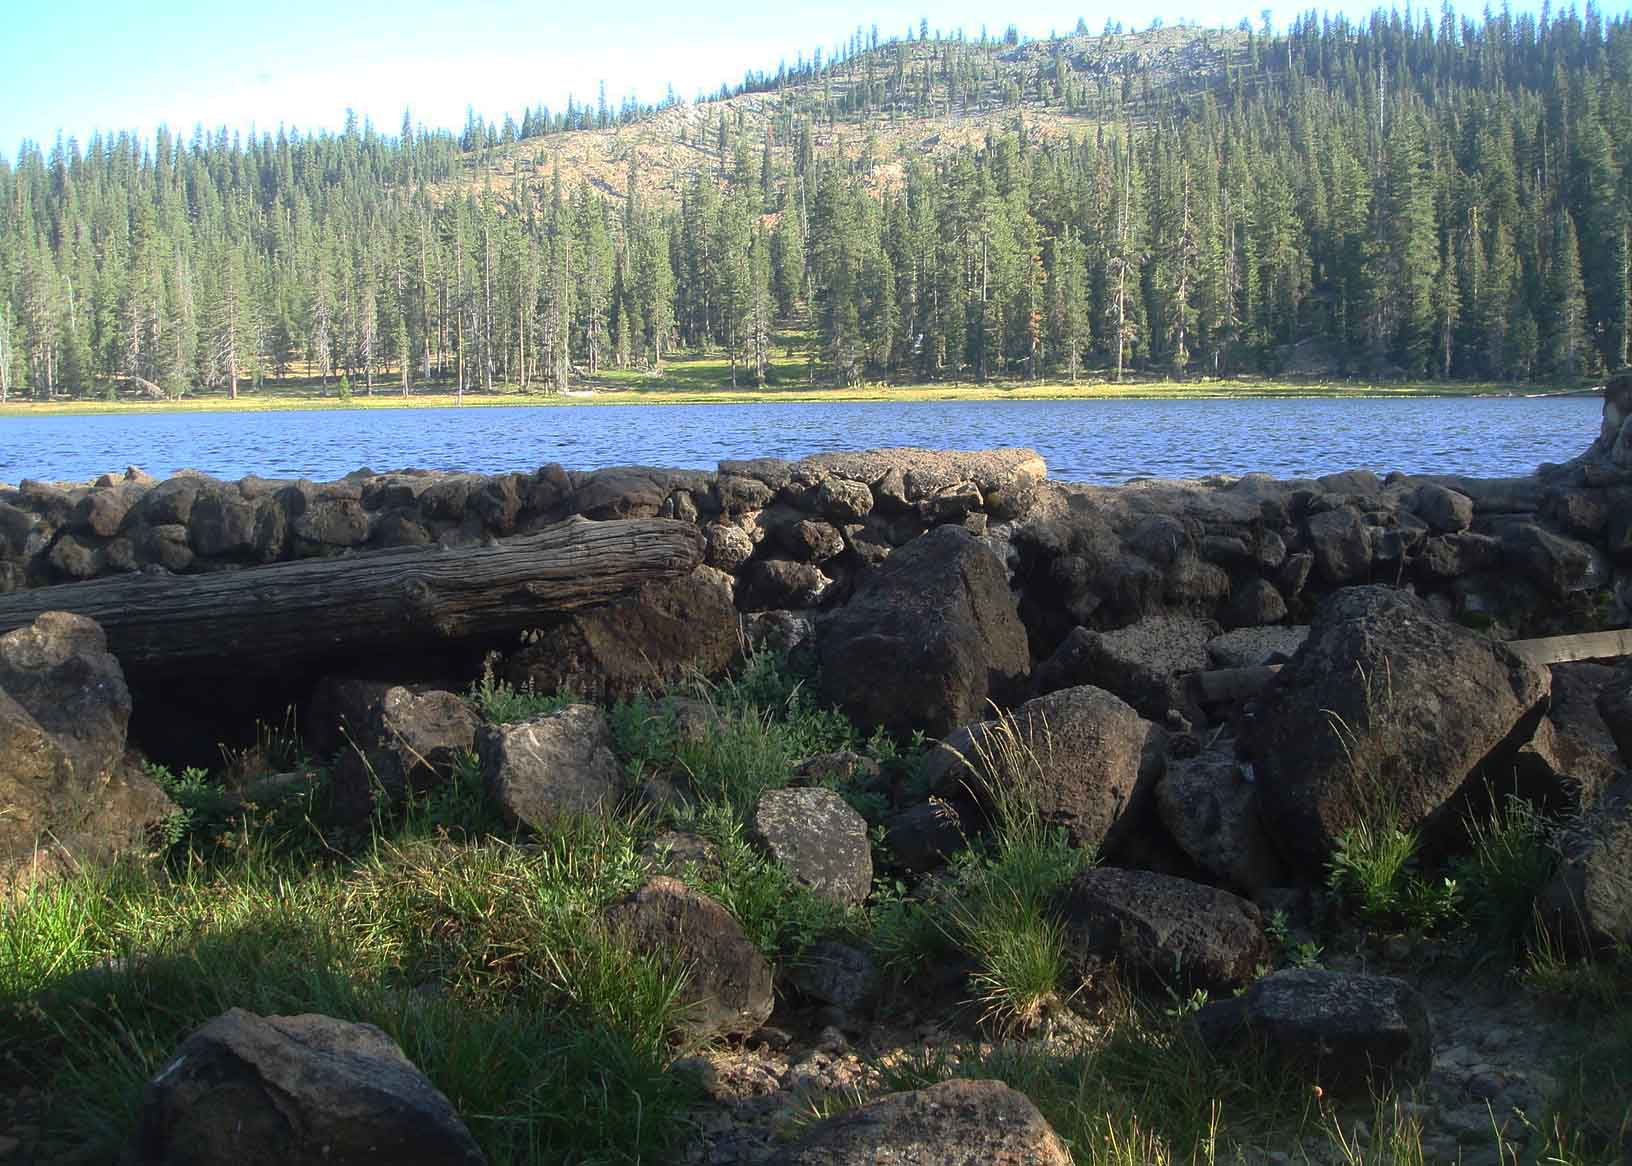 View of Gumboot Lake Dam